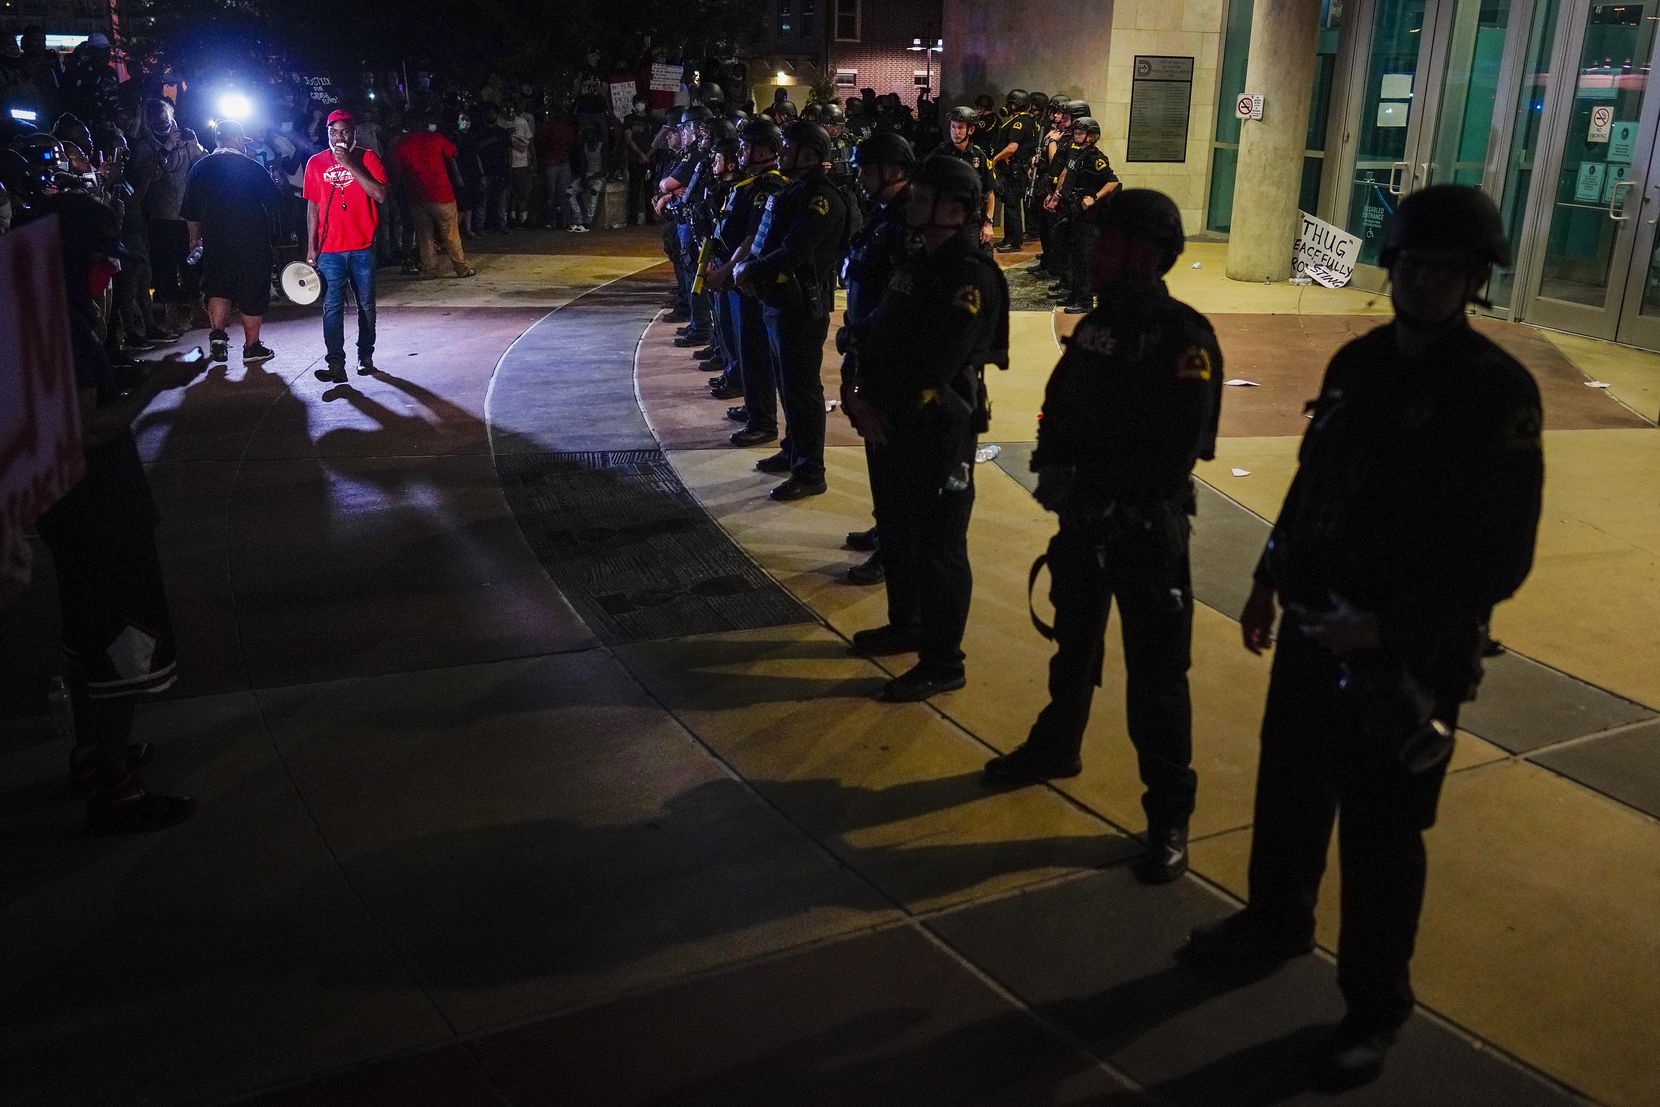 Dallas police form a line outside the front door of the the Dallas Police Headquarters as Dominique Alexander, the head of Next Generation Action Network, addresses a protest against police brutality on Friday, May 29, 2020, in Dallas.